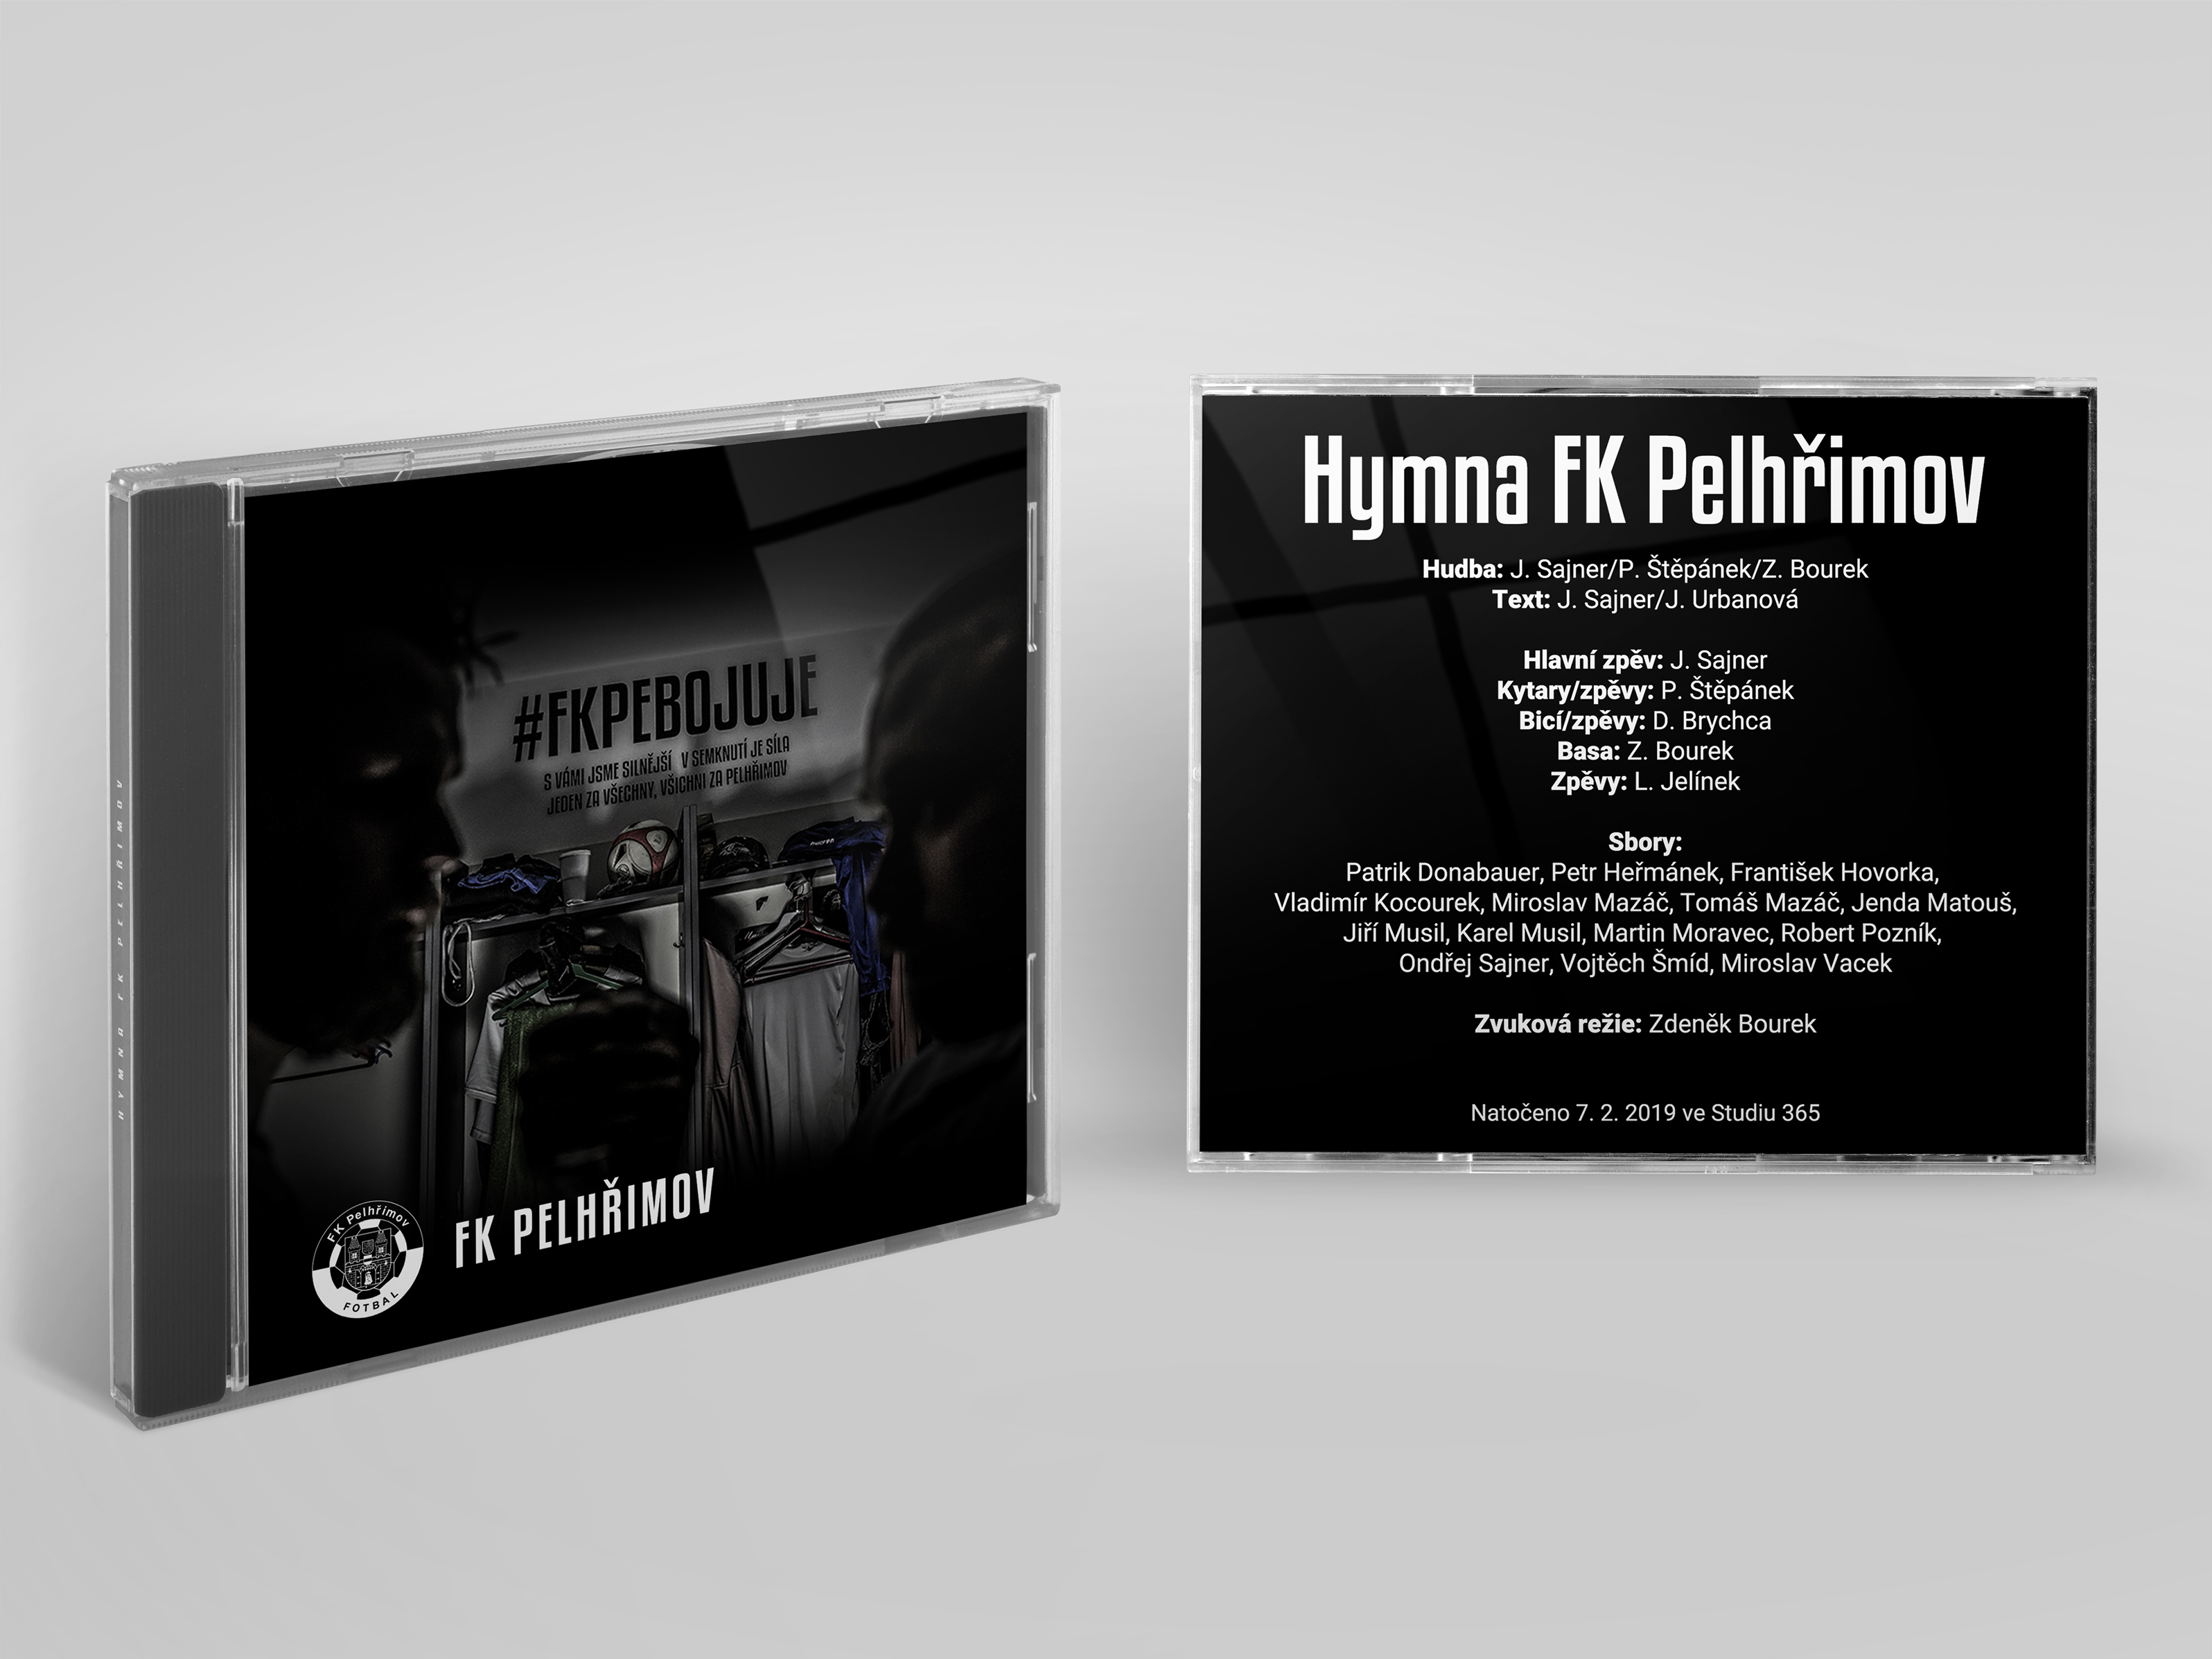 Hymna klubu na CD – přebal